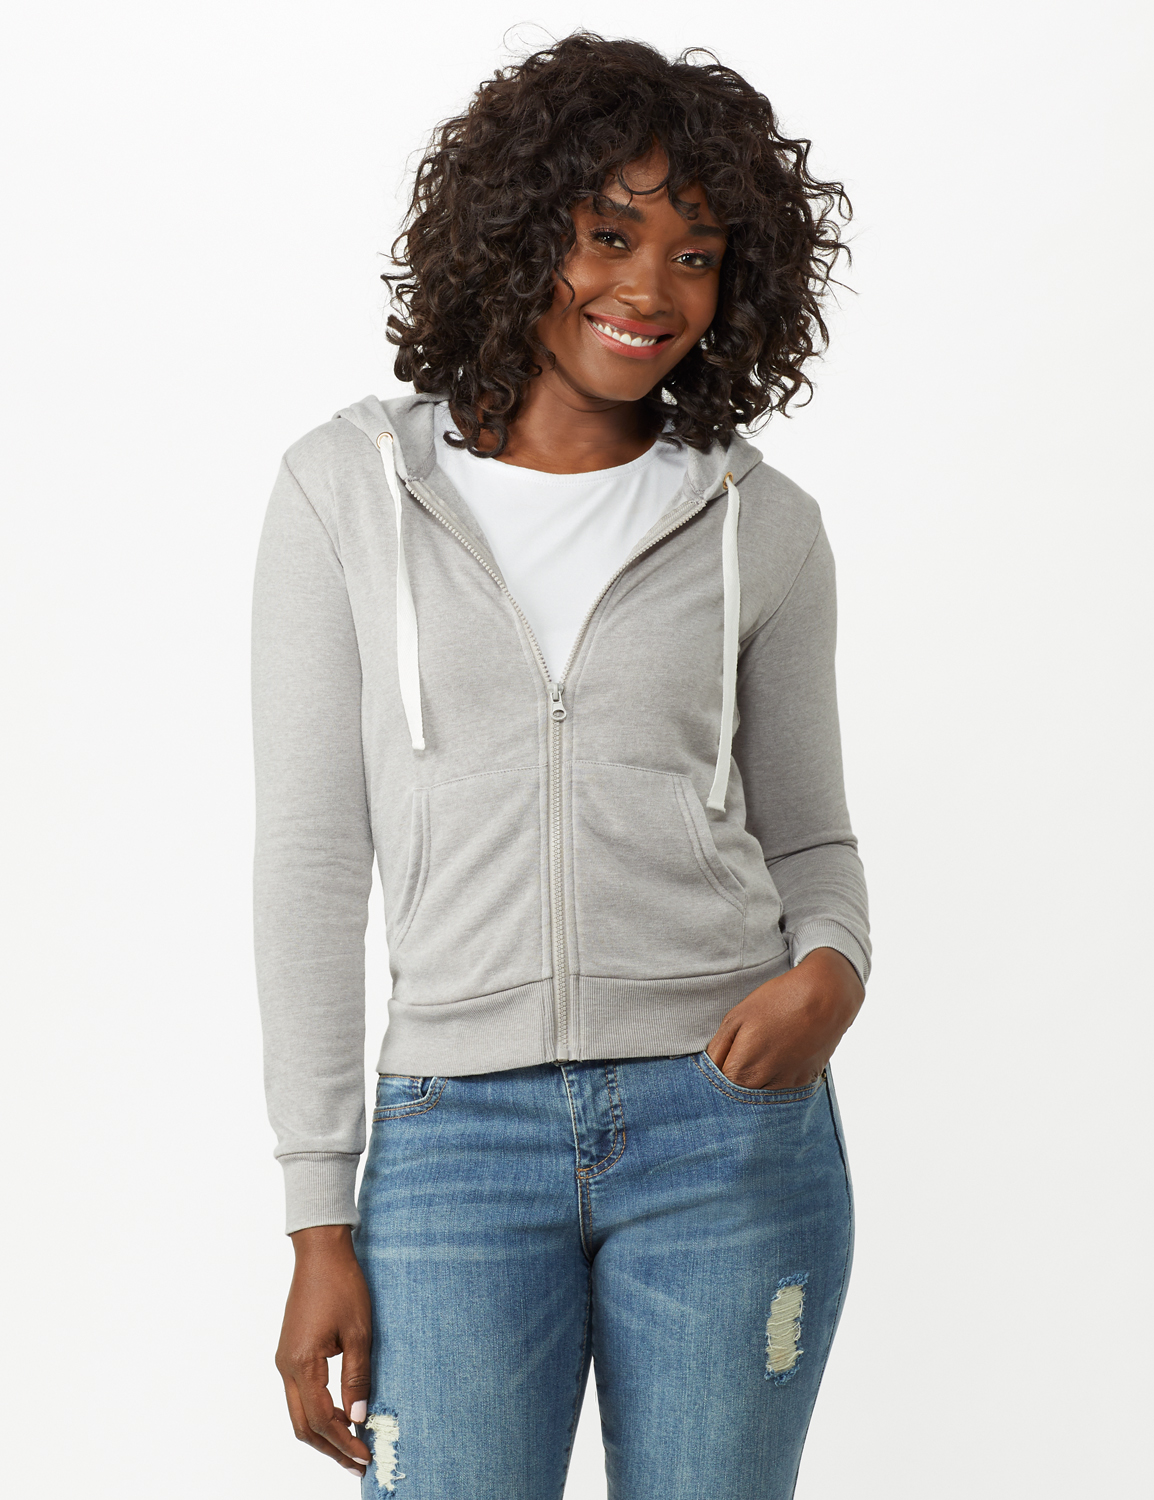 Mineral Wash Zip Hoodie - Alloy Grey - Front